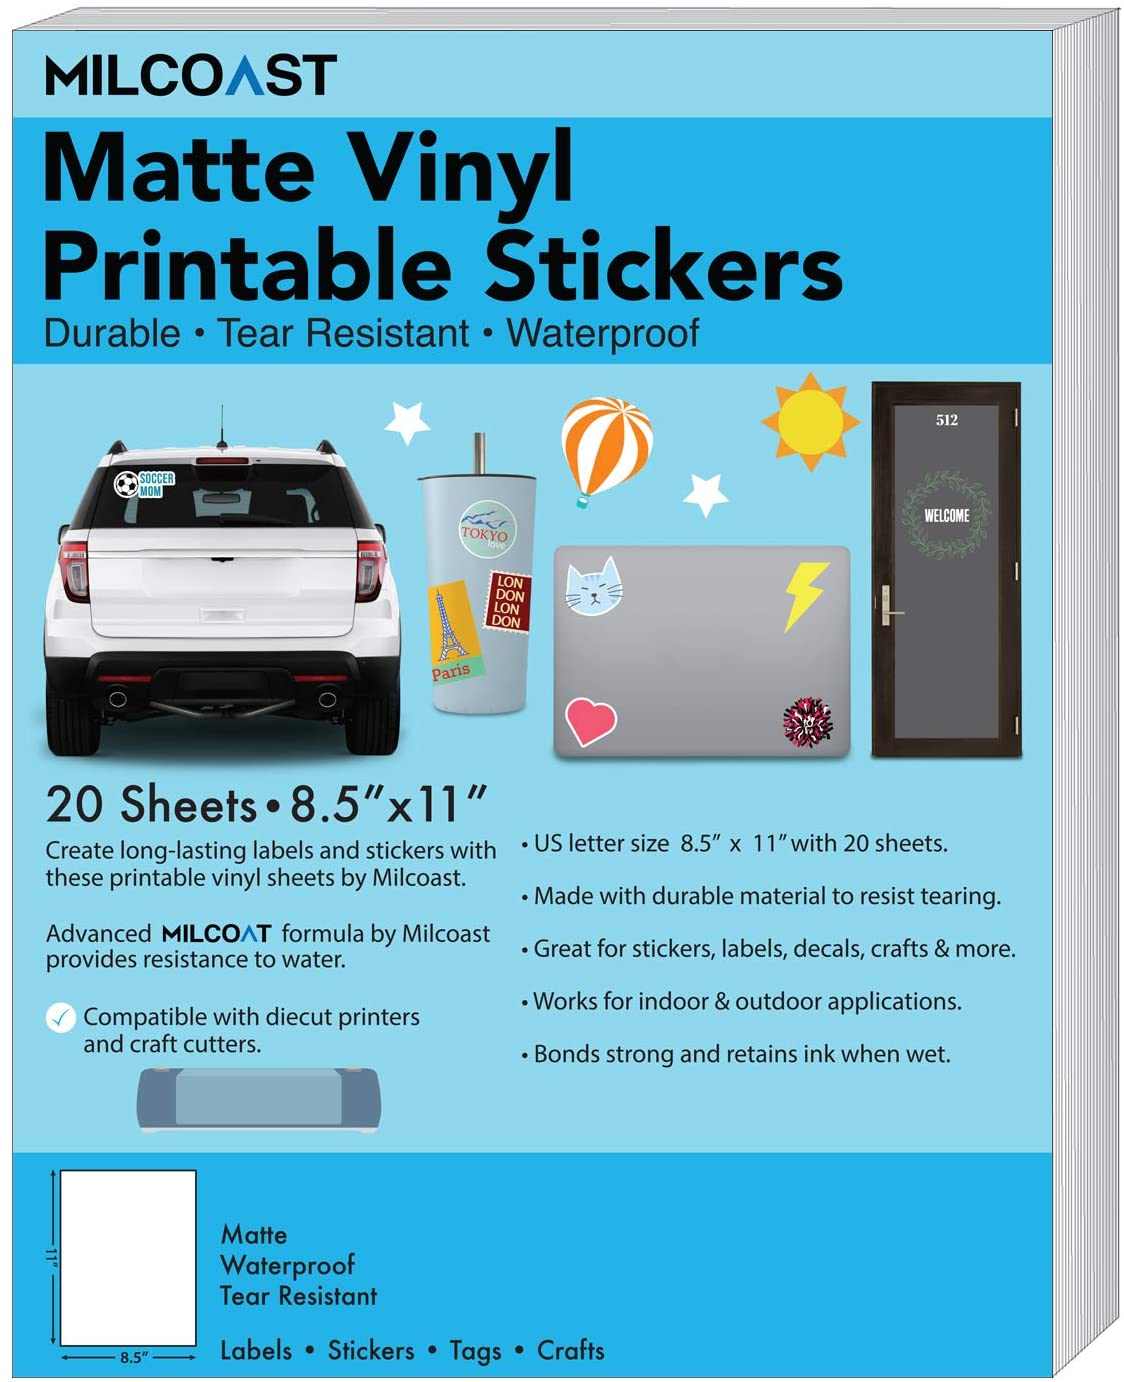 Milcoast Matte Waterproof Printable Vinyl Full Sheet Sticker Paper Labels - Adhesive, Inkjet/Laser Printer Compatible - for Arts, Crafts, Decals, Stickers, and More (20 Sheets)